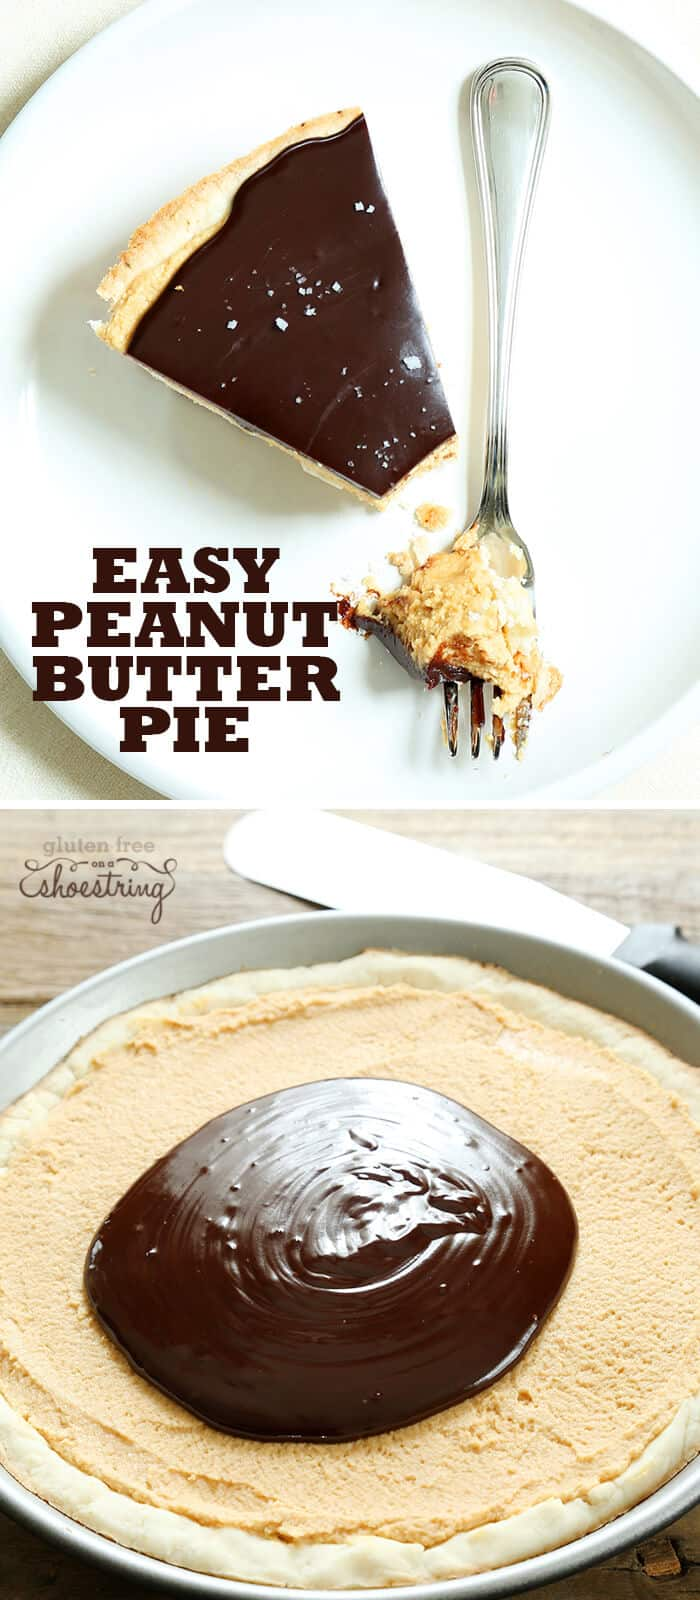 Peanut butter pie on a fork and peanut butter pie in metal pie dish